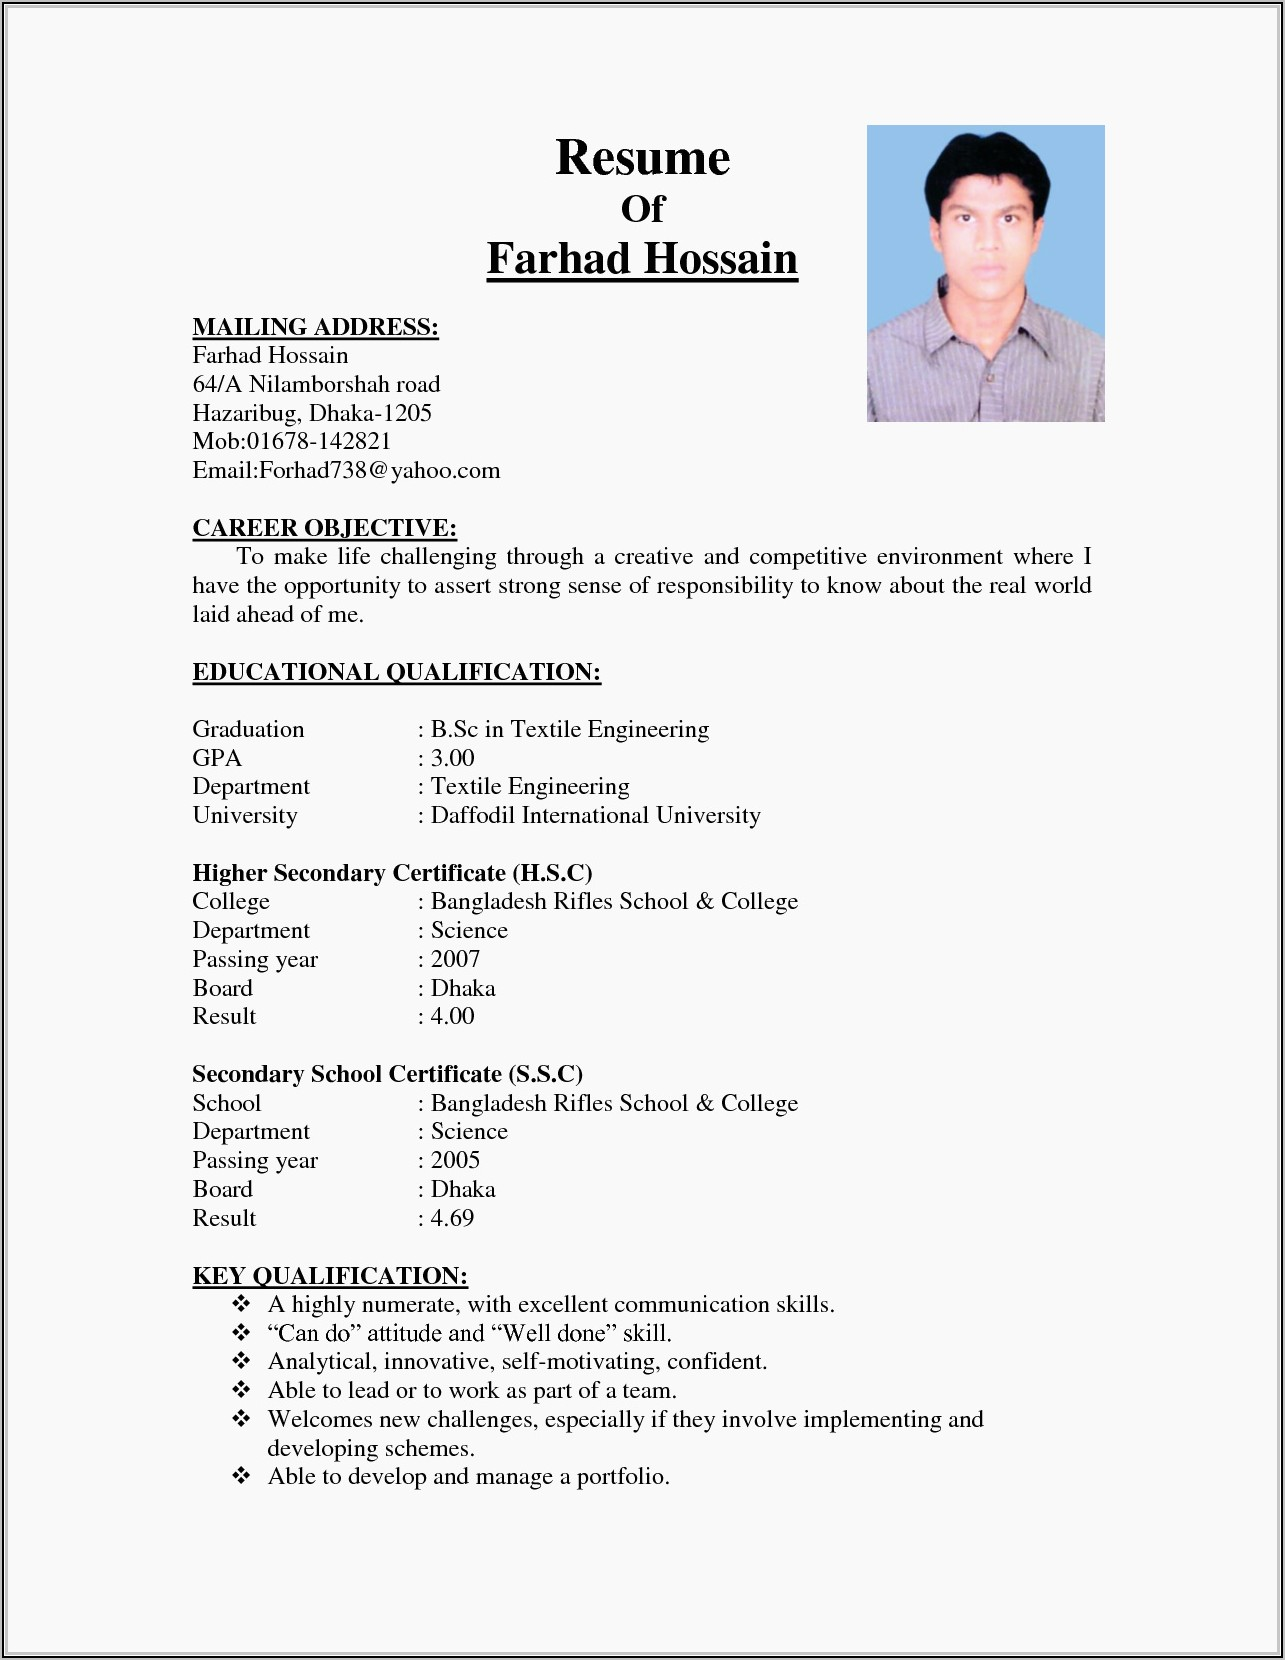 Resume Format Doc For Freshers Engineers